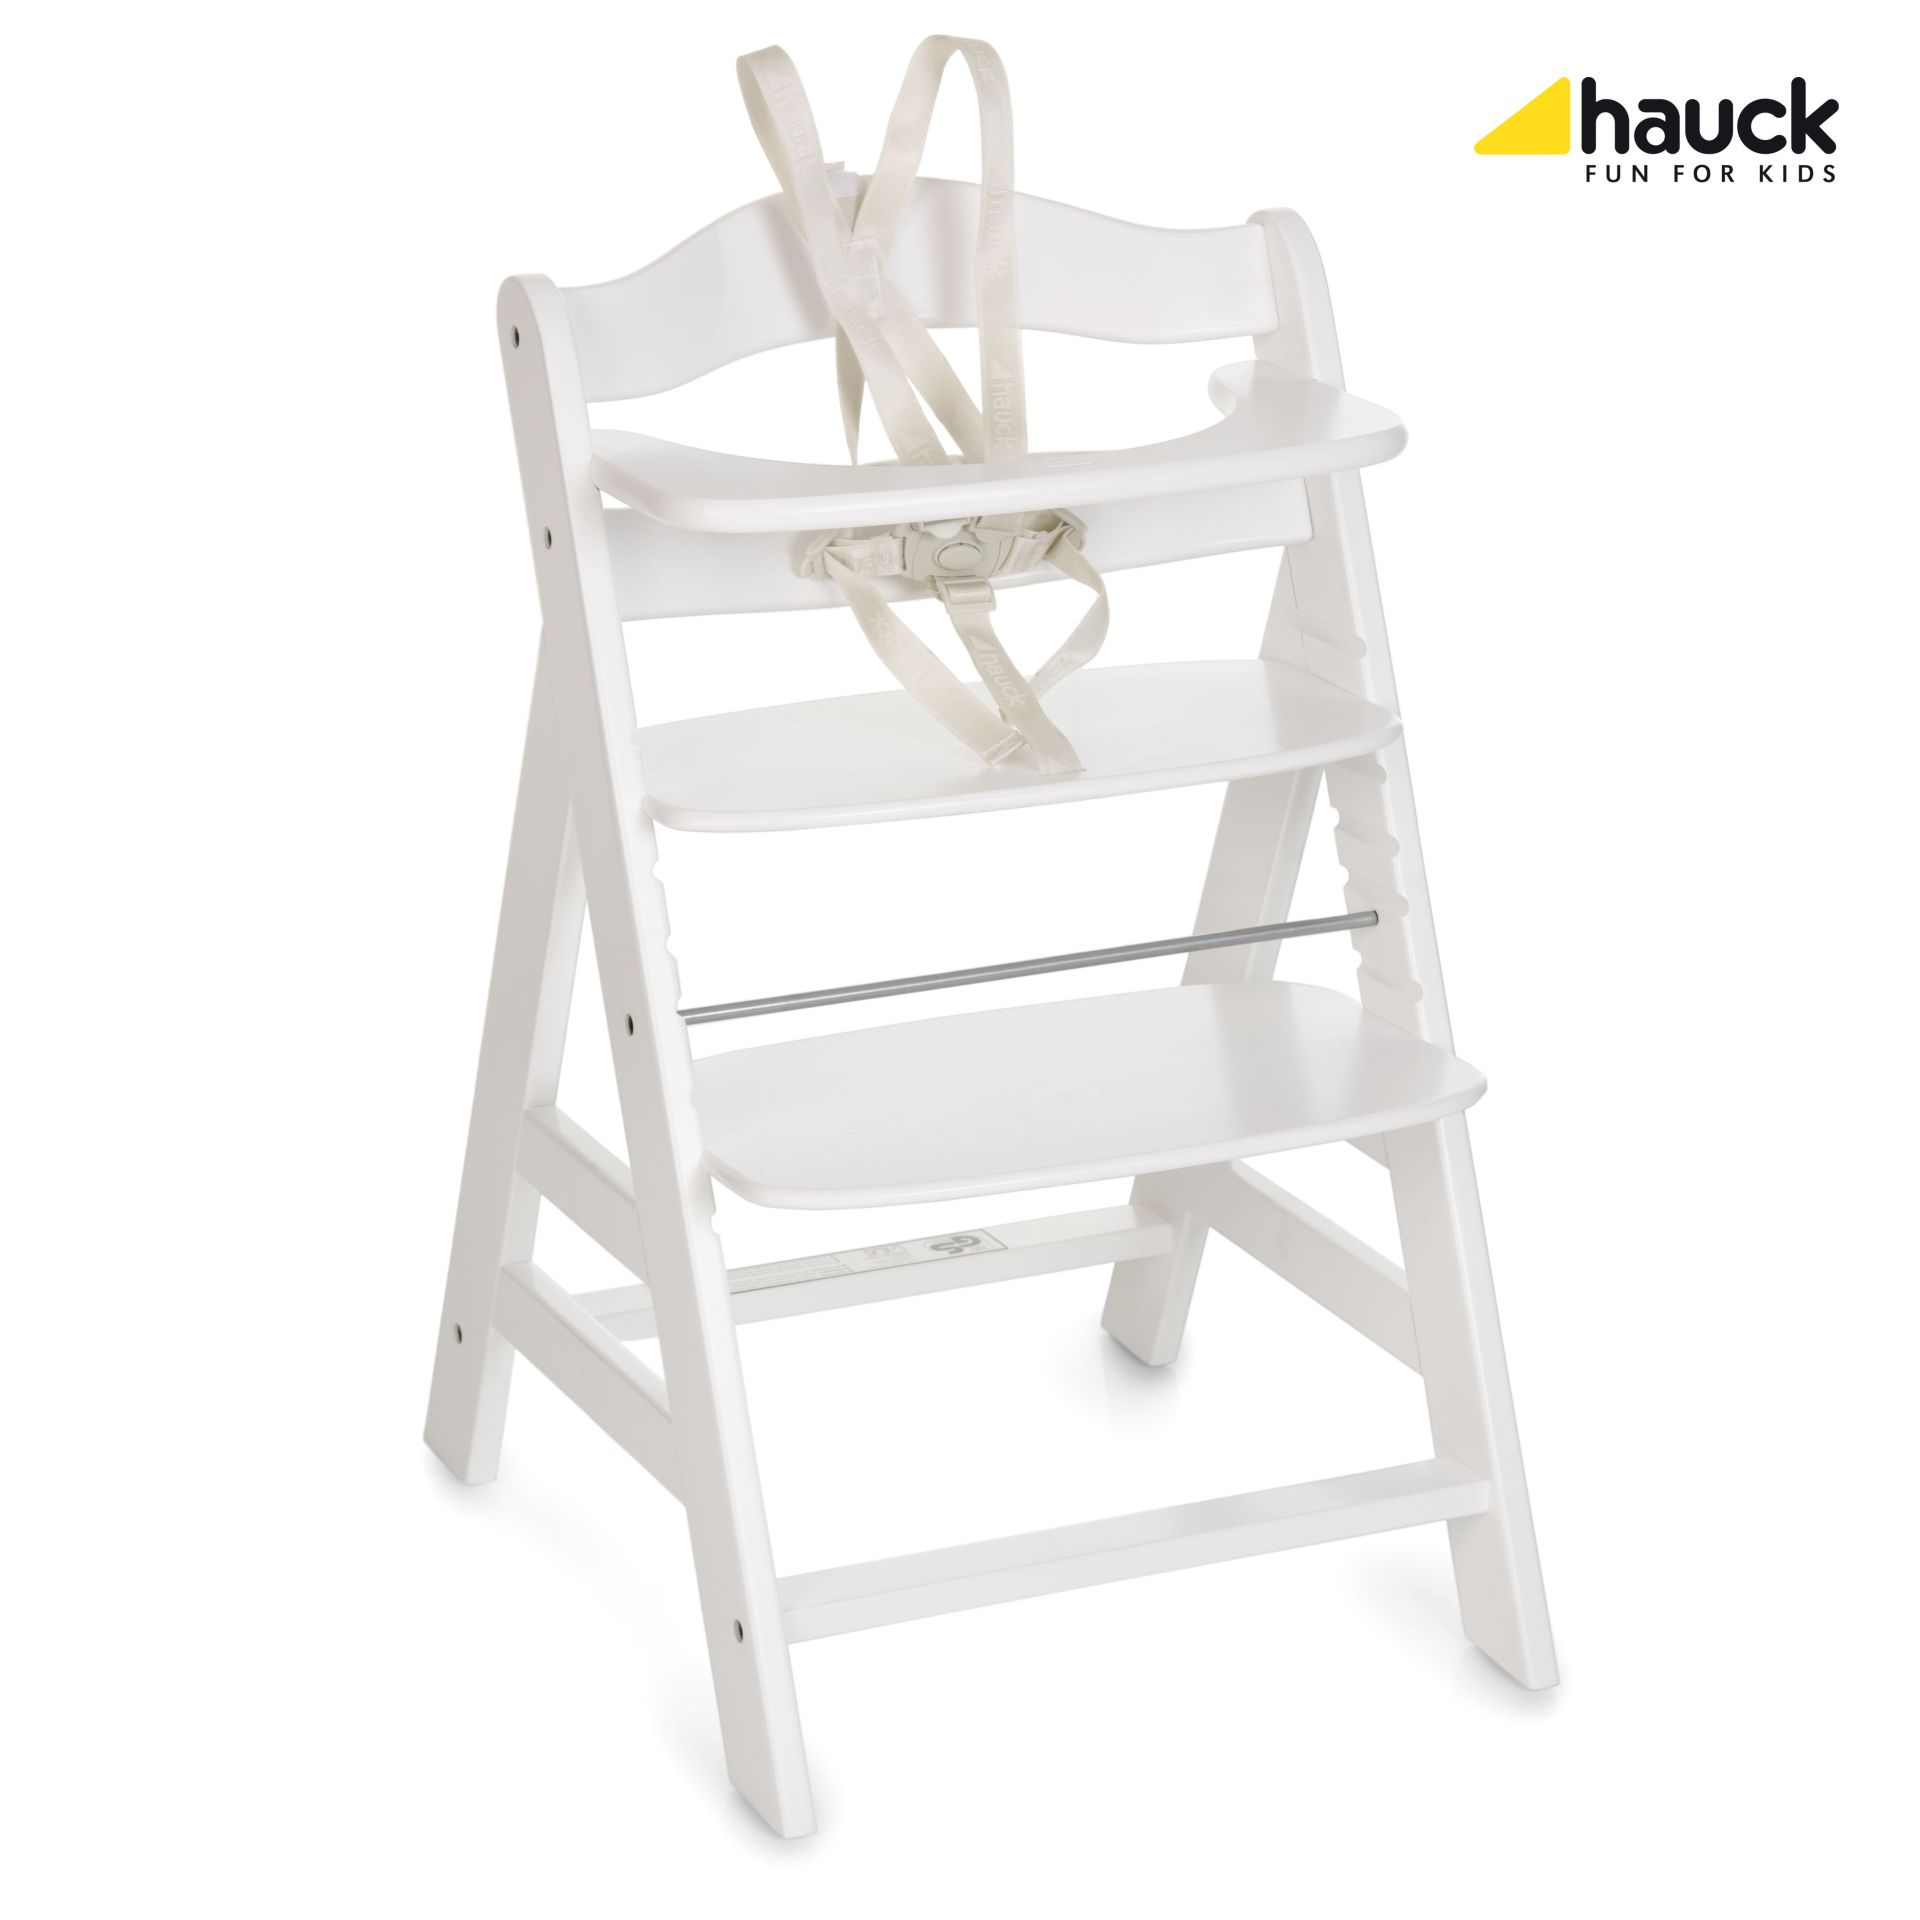 La Chaise Haute Hauck Alpha Plus White 2019